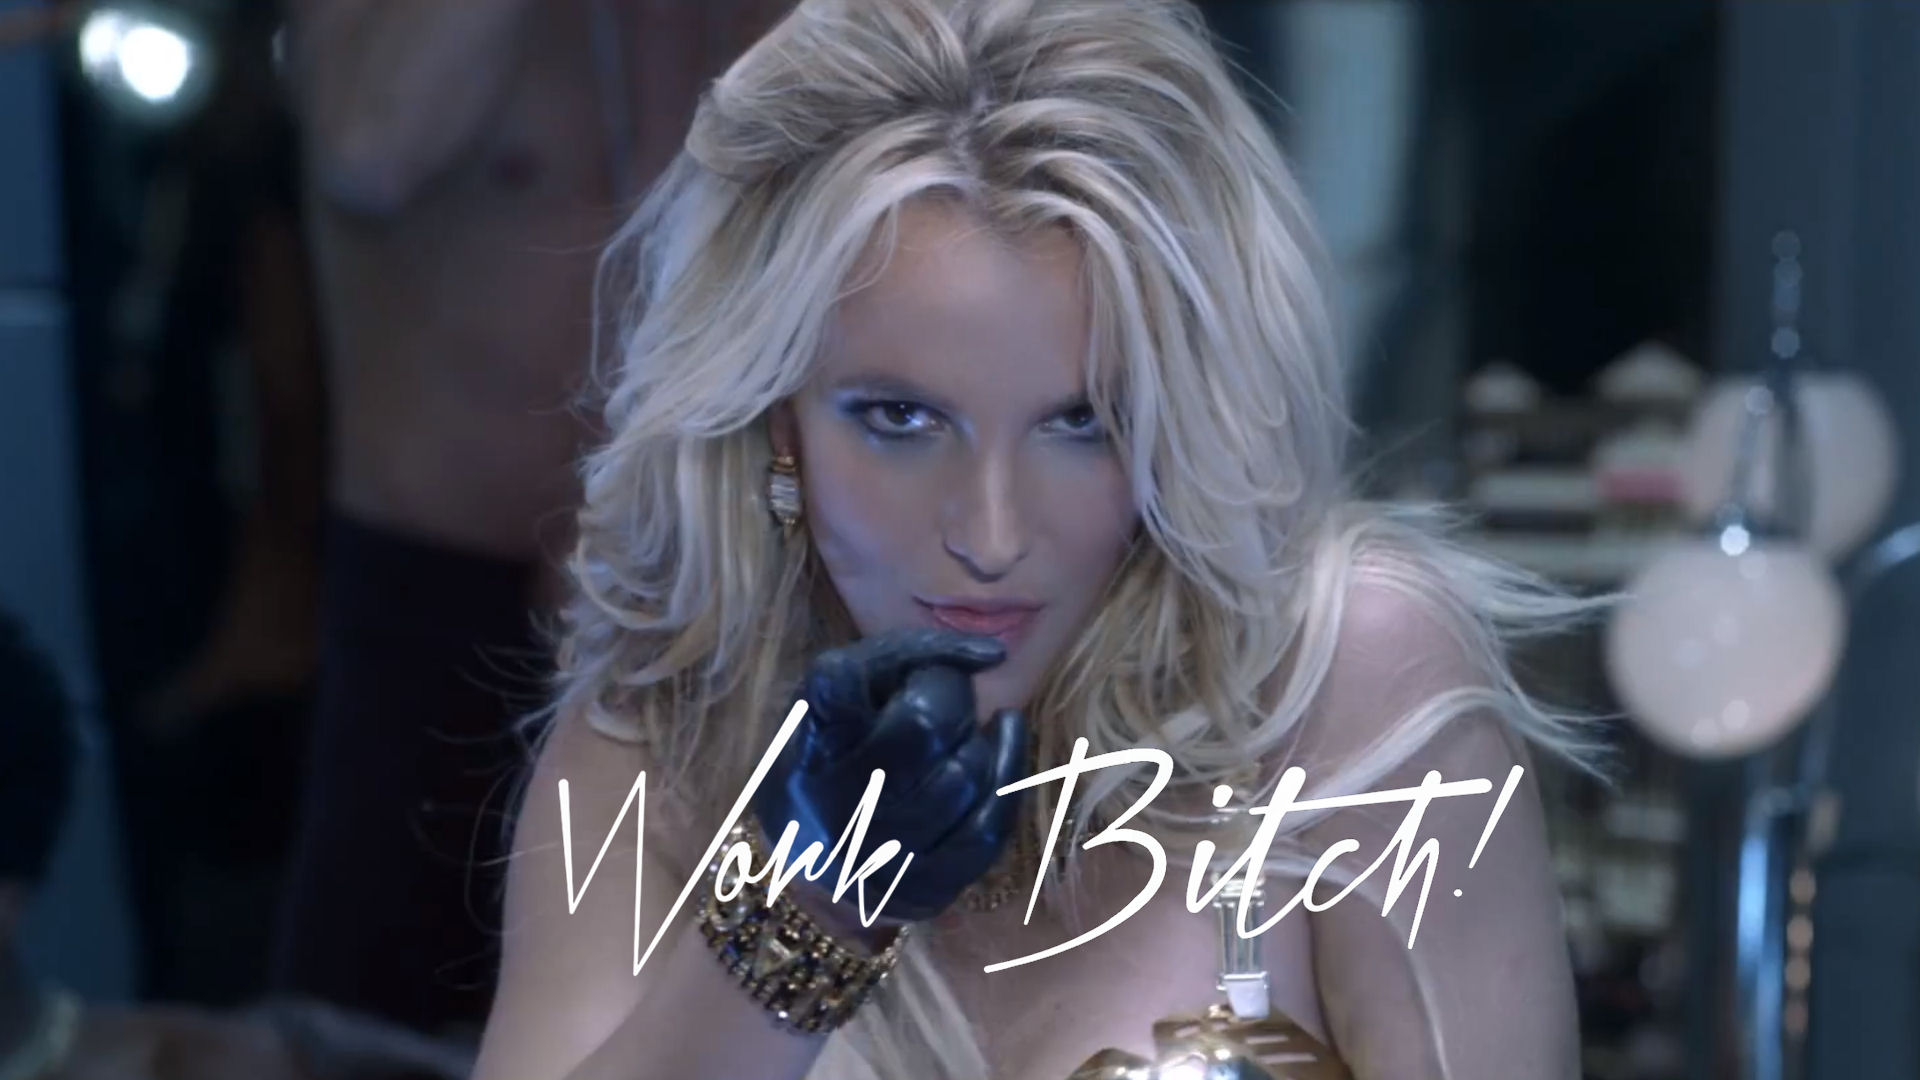 Britney spears work bitch sex music video